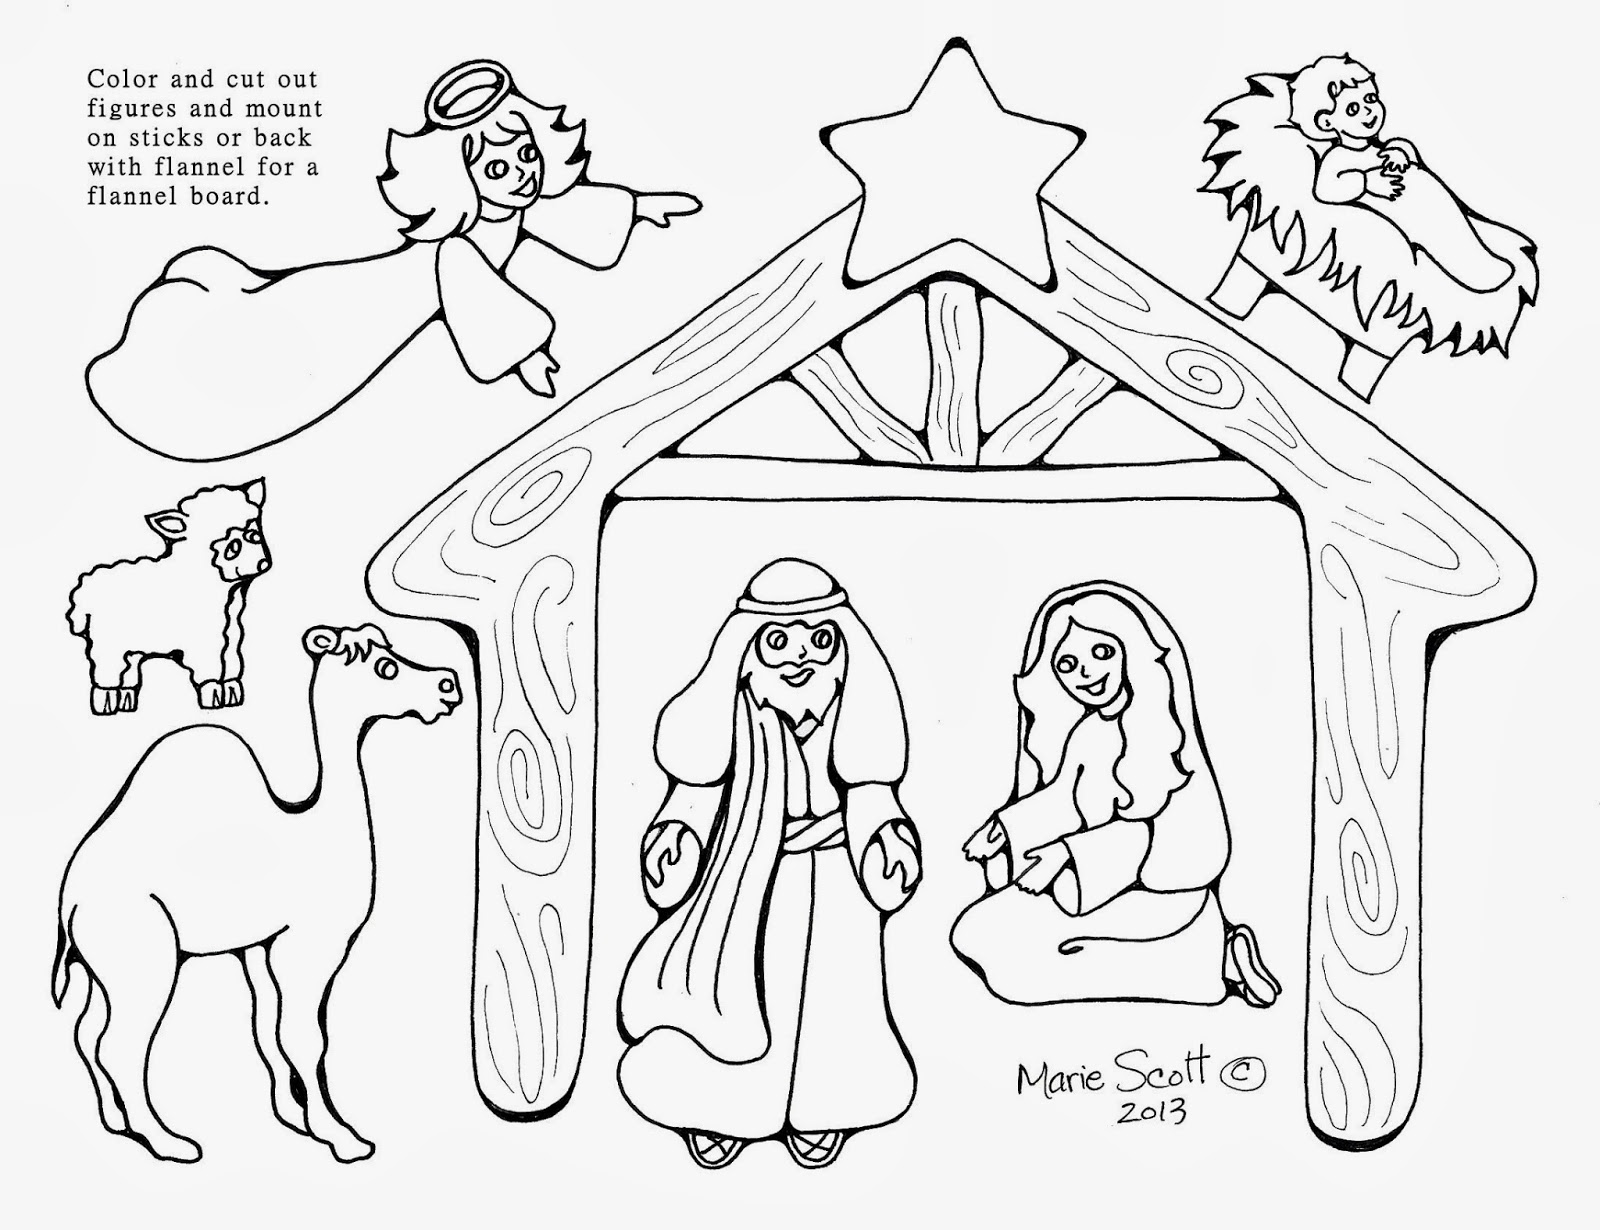 Invaluable image for printable nativity